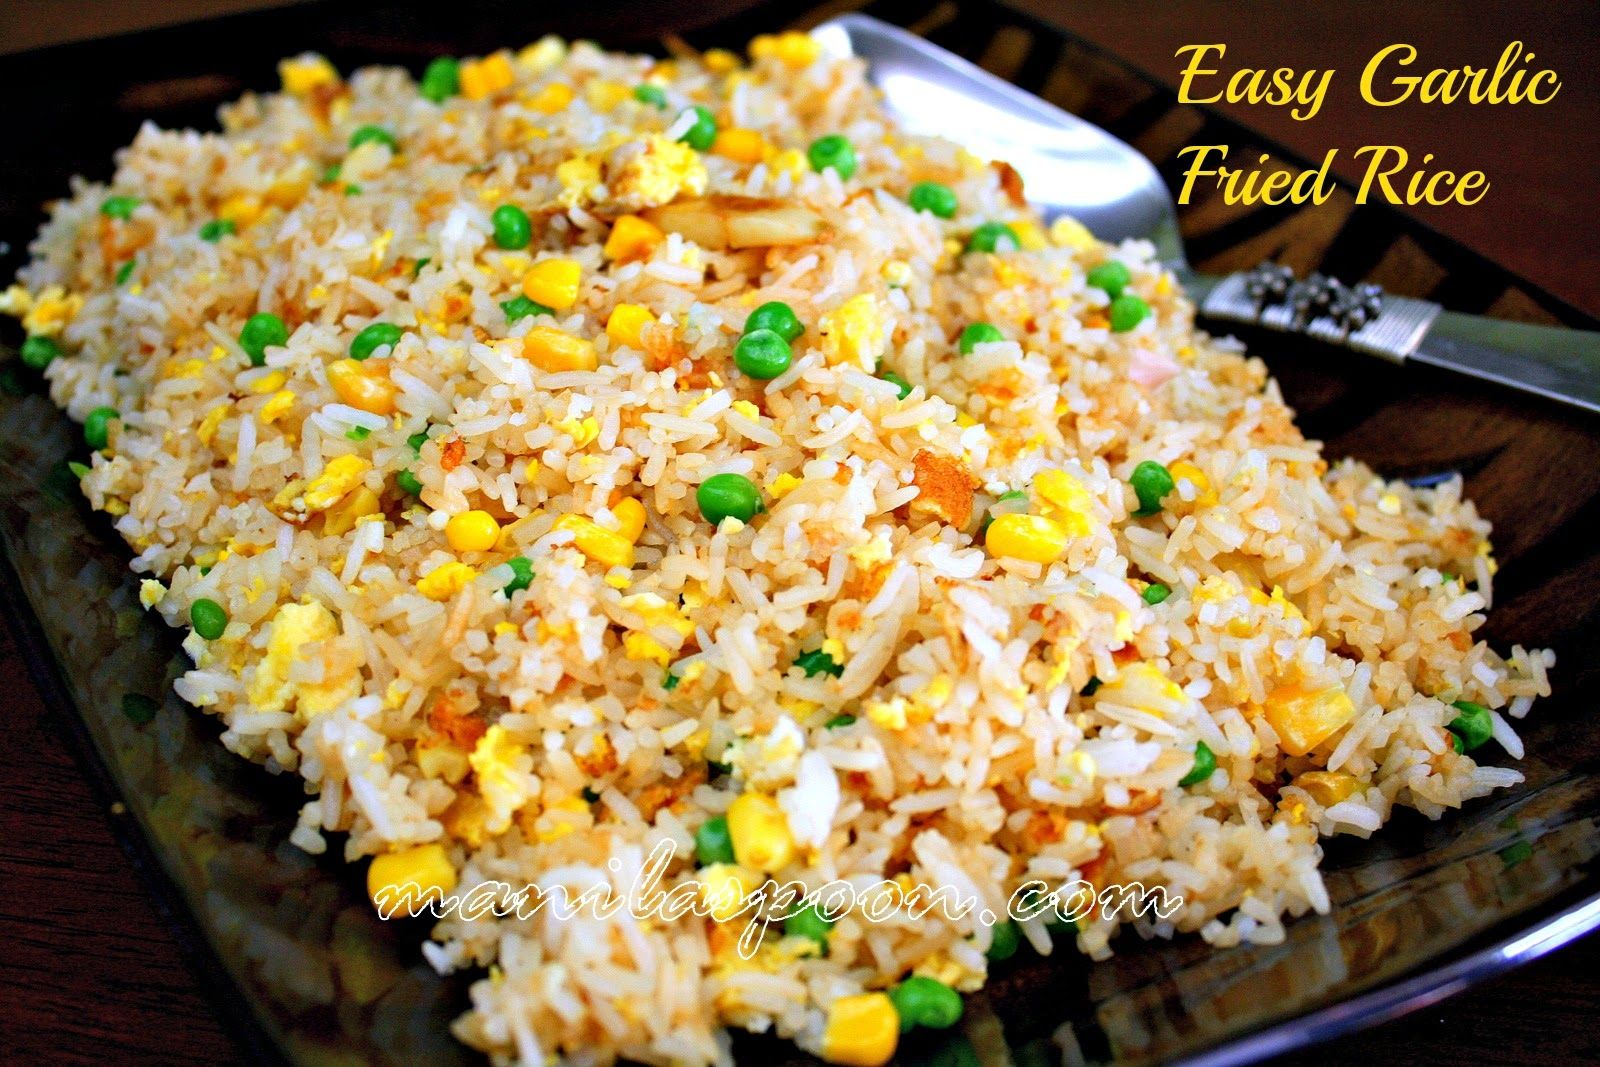 Easy and yummy garlic fried rice no need to throw left over rice manila spoon easy garlic fried rice sinangag very versatile as you can add whatever meat or veggies you have at hand no more throwing away of ccuart Image collections